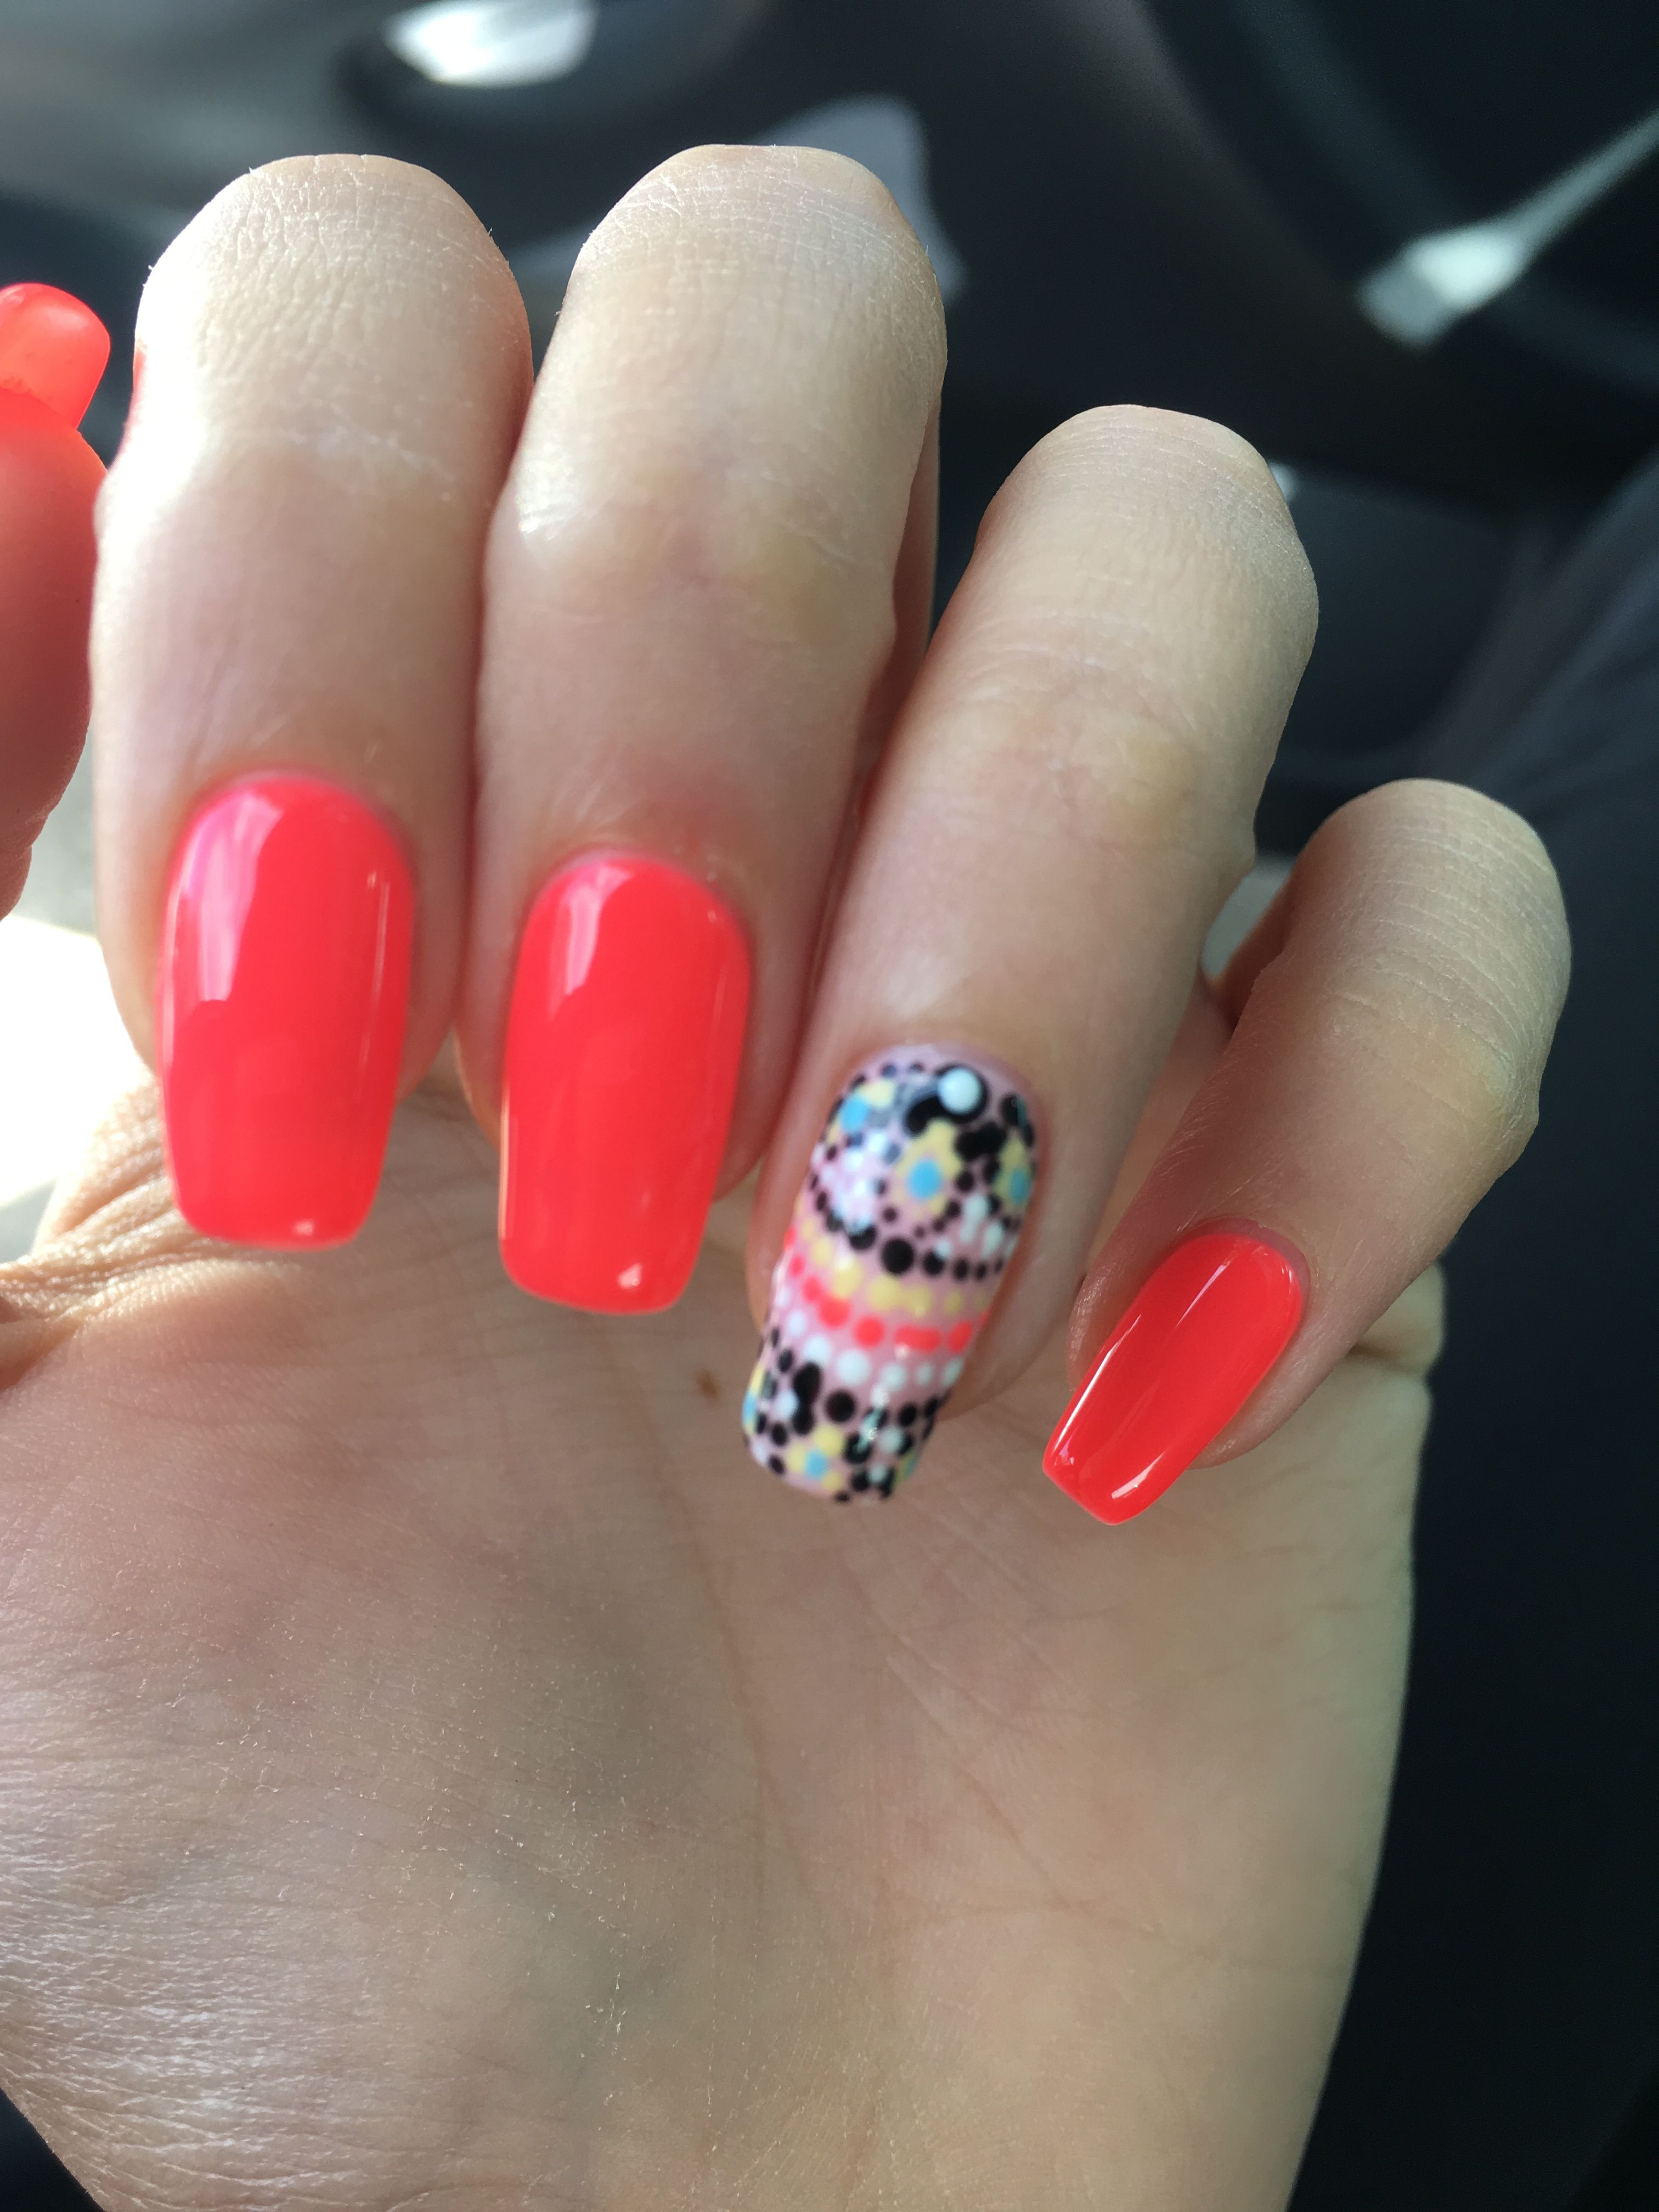 Summer nail design. Square round nails | Nail art | Pinterest ...